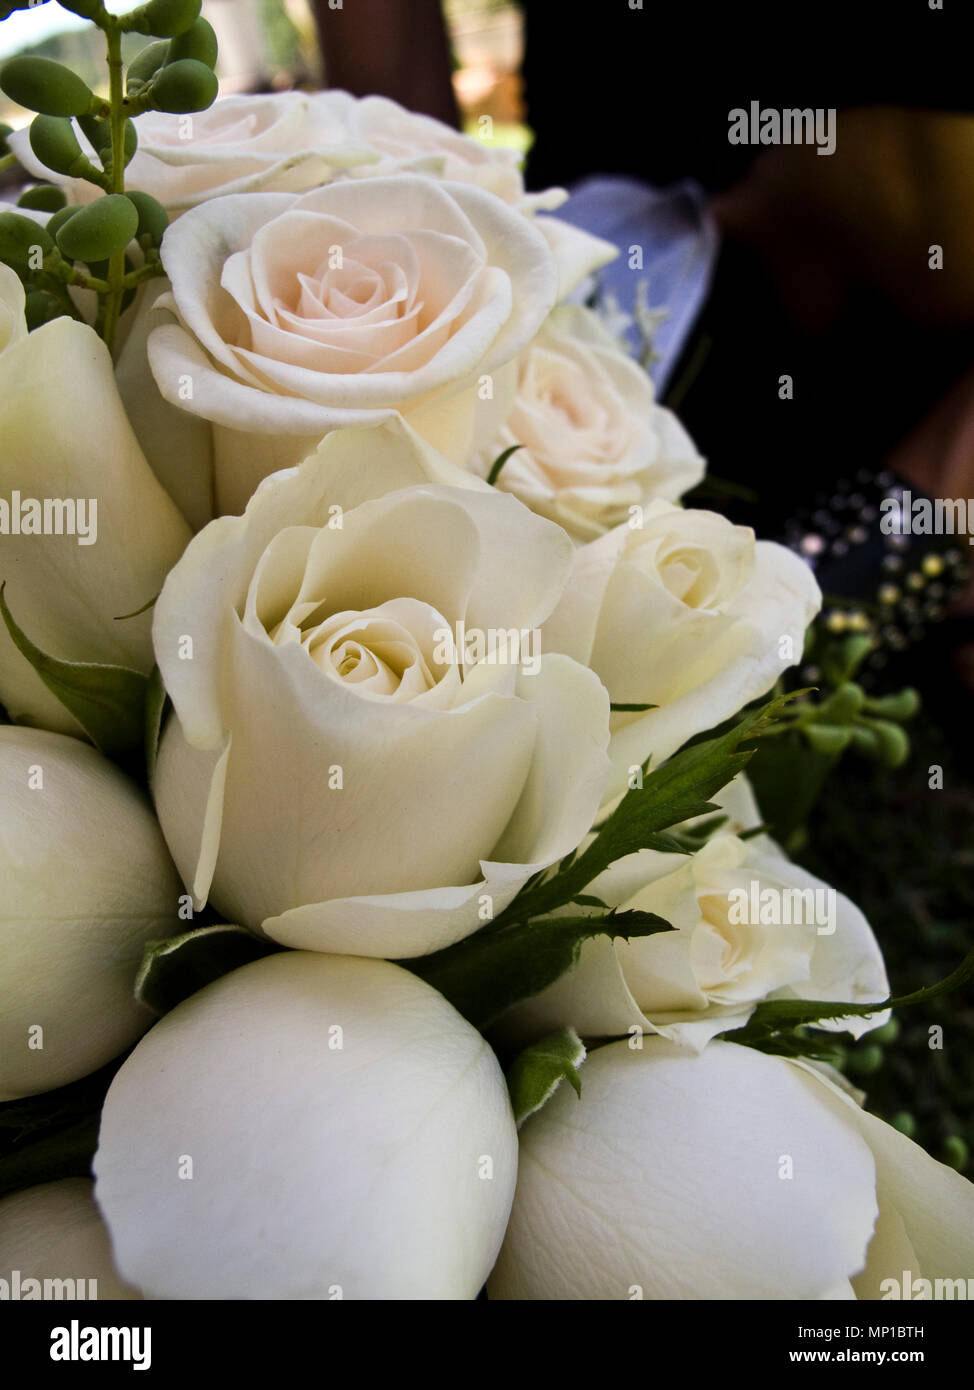 Stylish And Delicate Roses White Cream Pink Rose Petals Fresh Bouquet Arrangement For Wedding Stock Photo Alamy